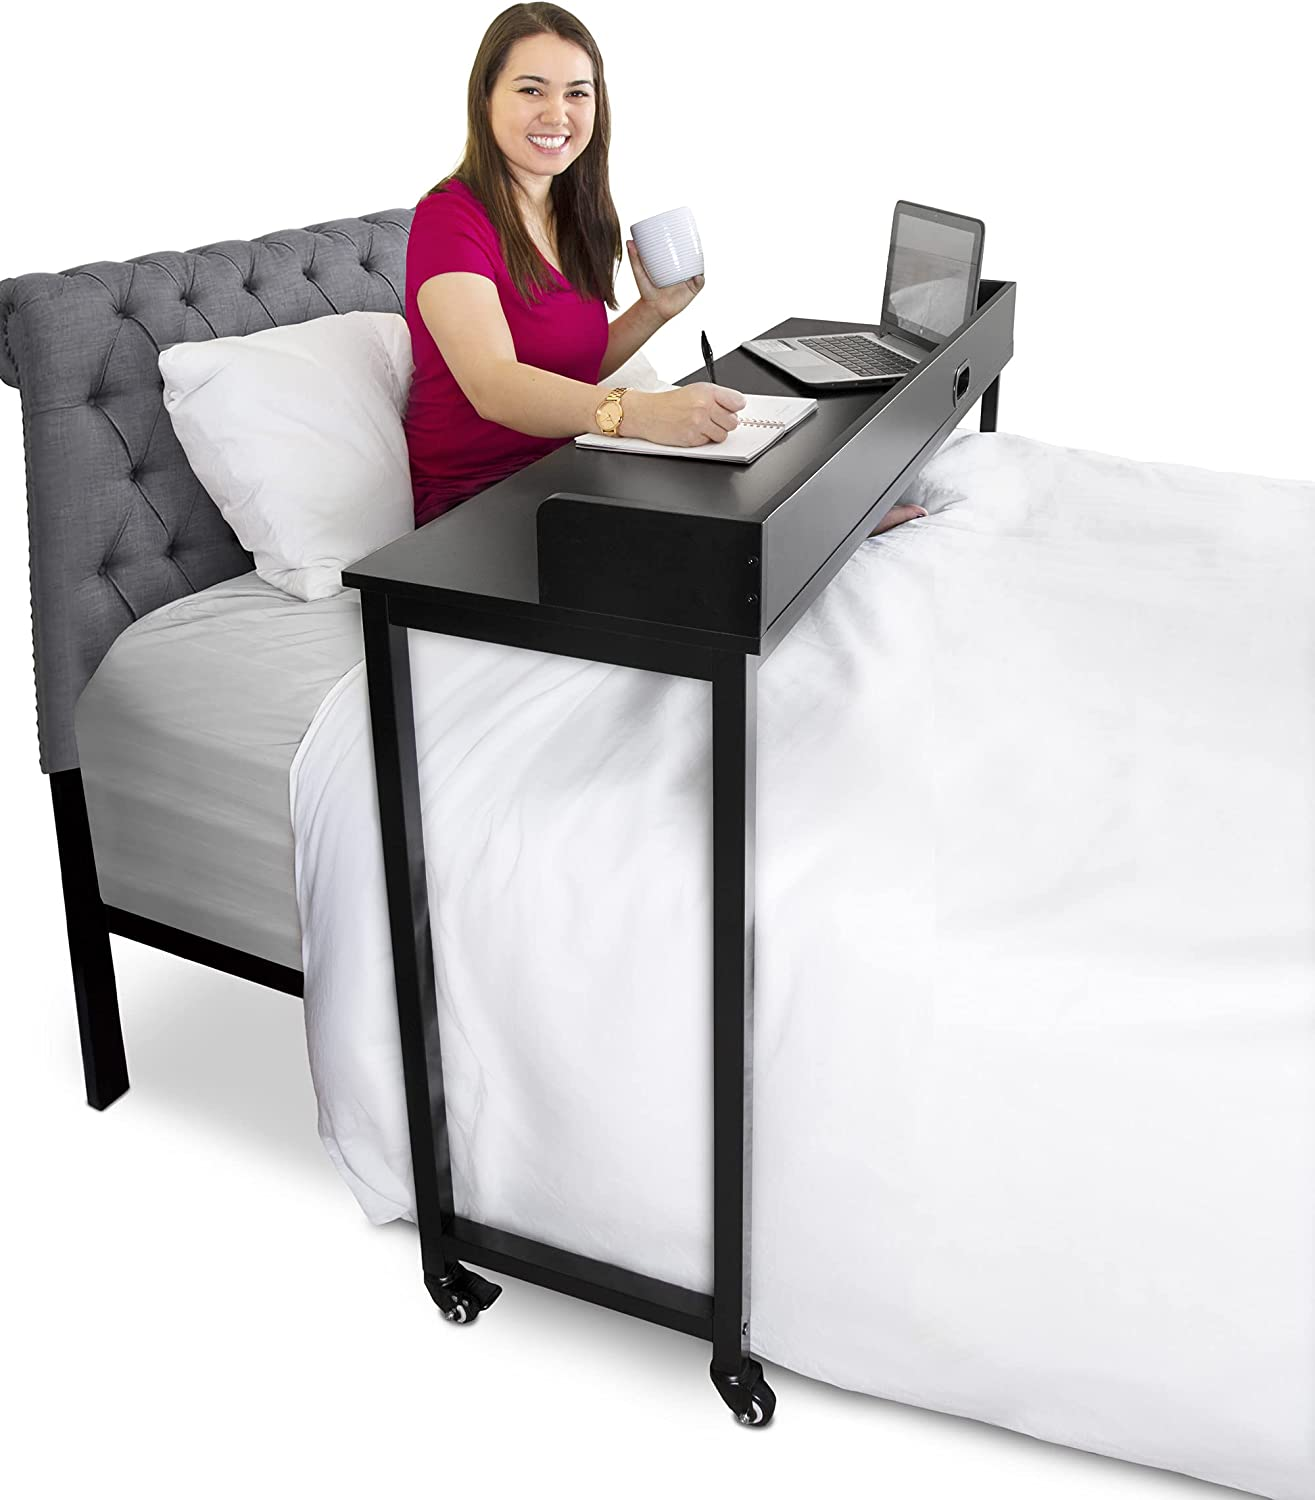 Miami Mall Stand Steady Joy Overbed Table Twin Memphis Mall Adjustable for Height Beds